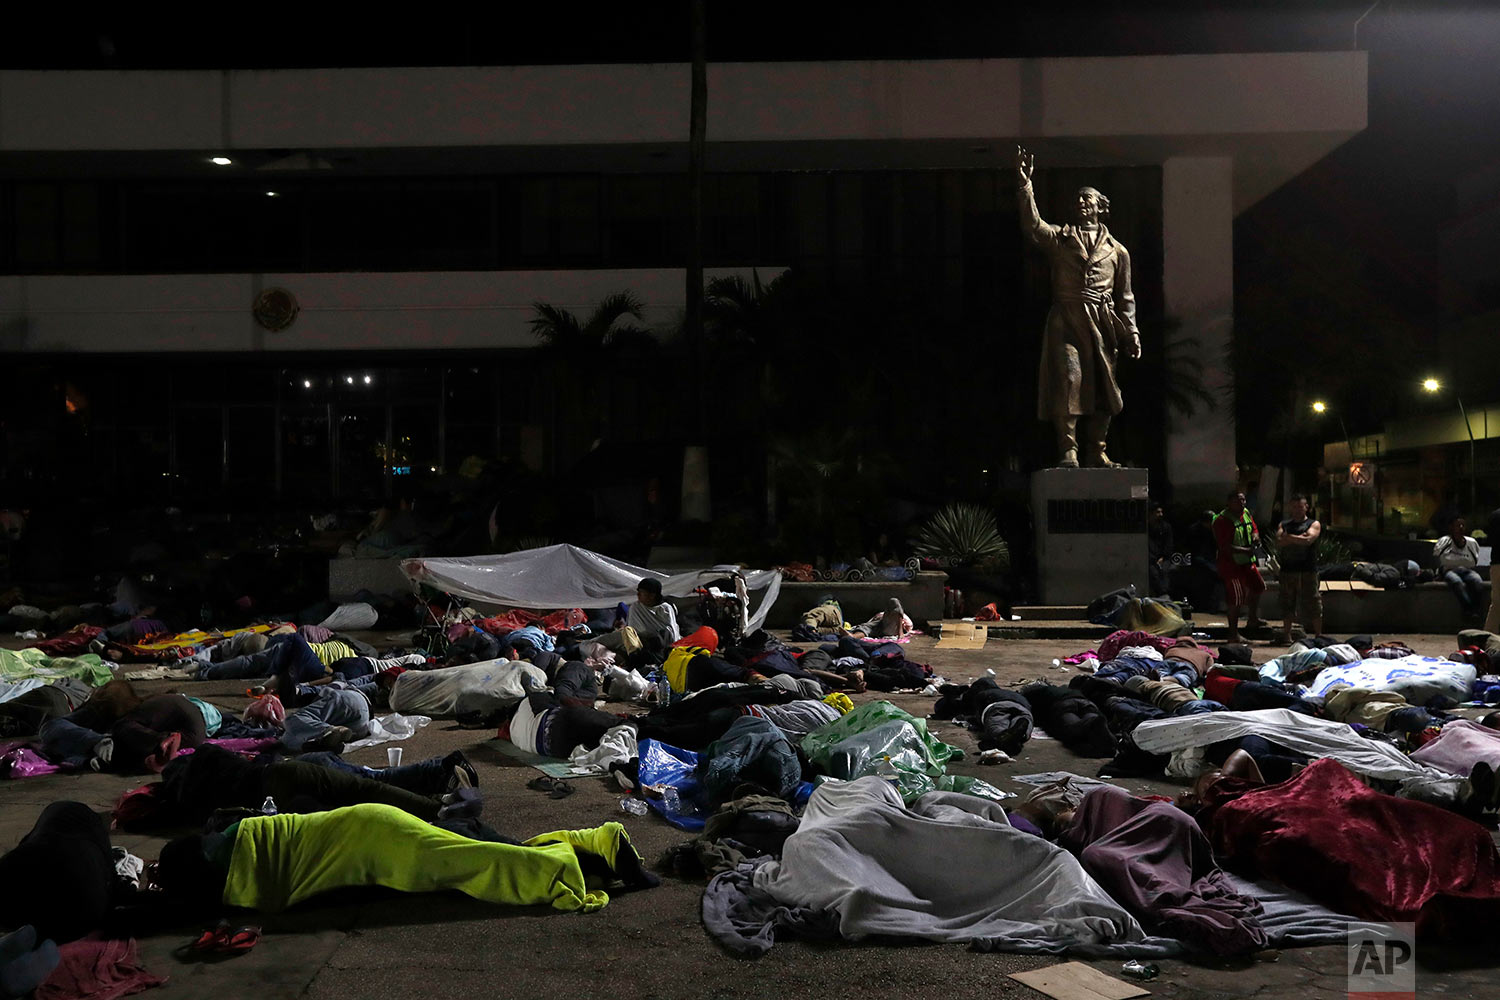 Honduran migrants hoping to reach the U.S. sleep in the southern Mexico city of Tapachula, Monday, Oct. 22, 2018, in a public plaza featuring a statue of Mexican national hero Miguel Hidalgo, a priest who launched Mexico's War of Independence in 1810. (AP Photo/Moises Castillo)